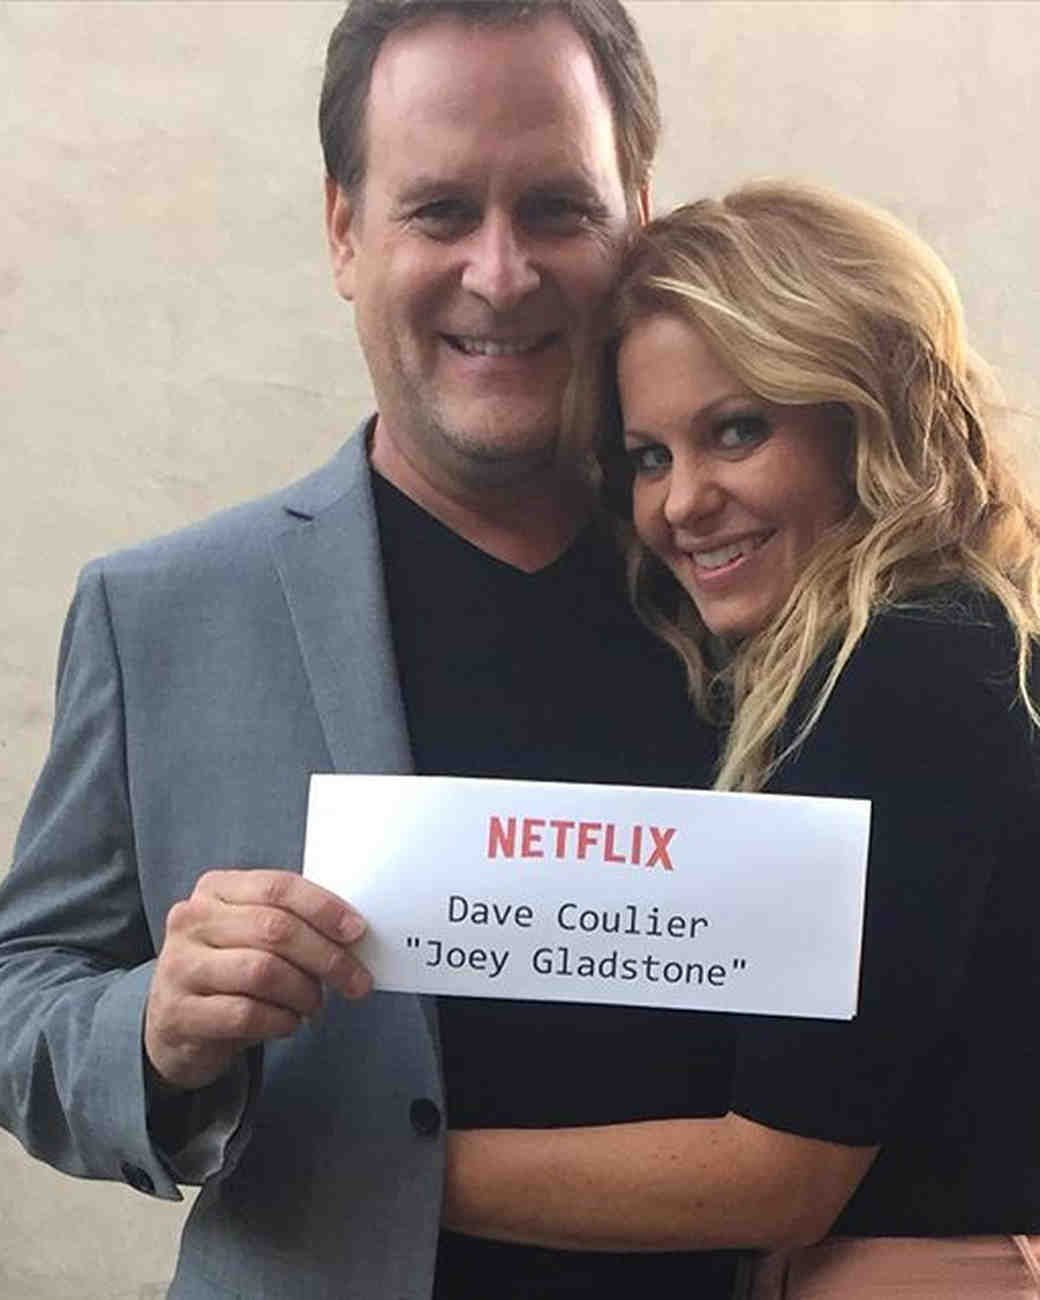 fuller-house-dave-coulier-uncle-joey-1115.jpg